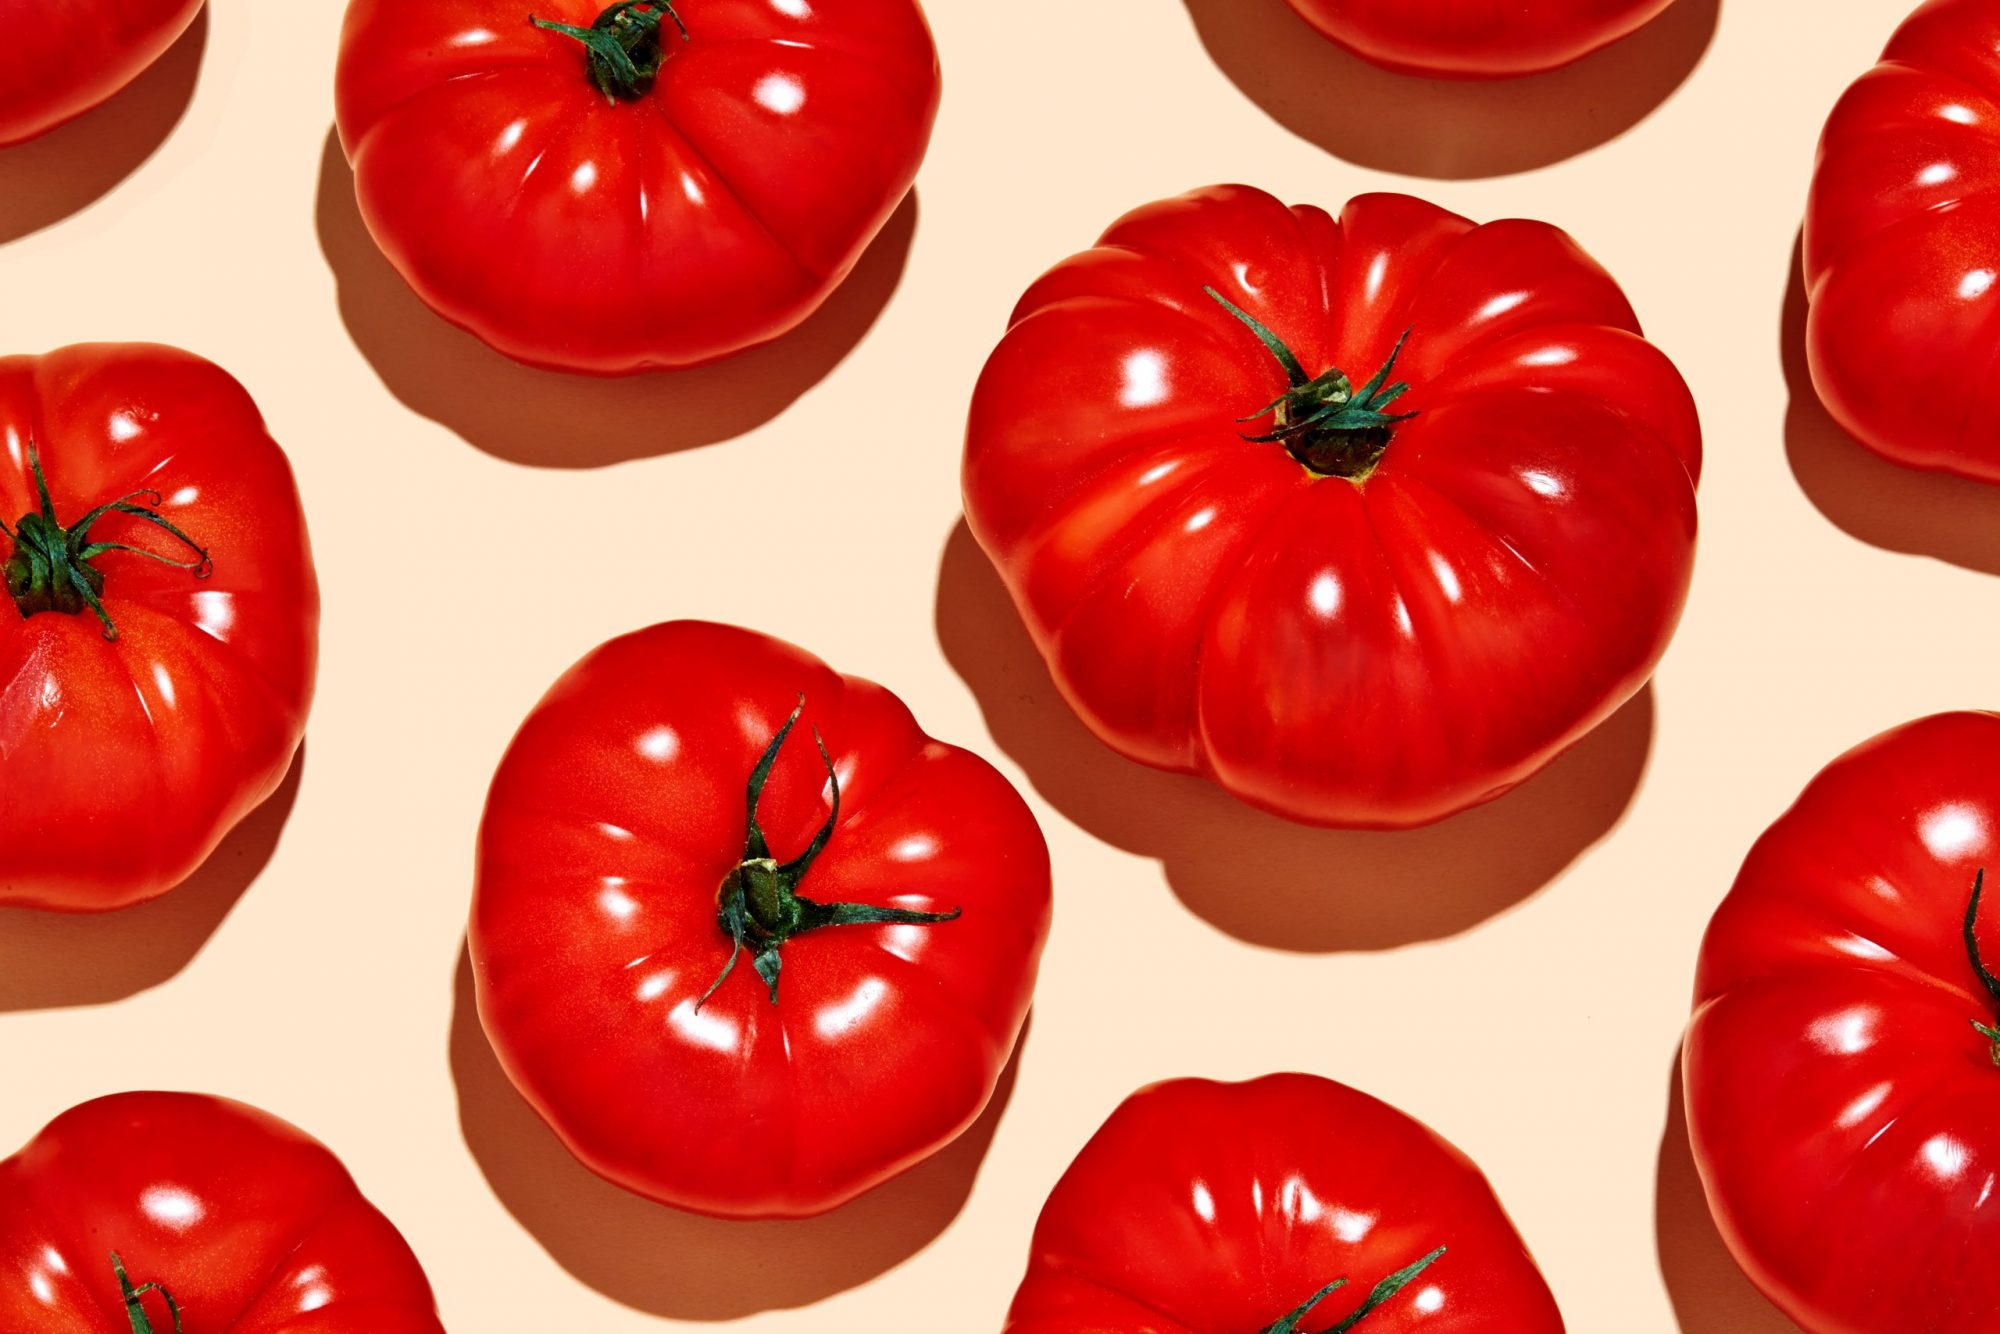 healthiest foods, health food, diet, nutrition, time.com stock, tomatoes, fruits